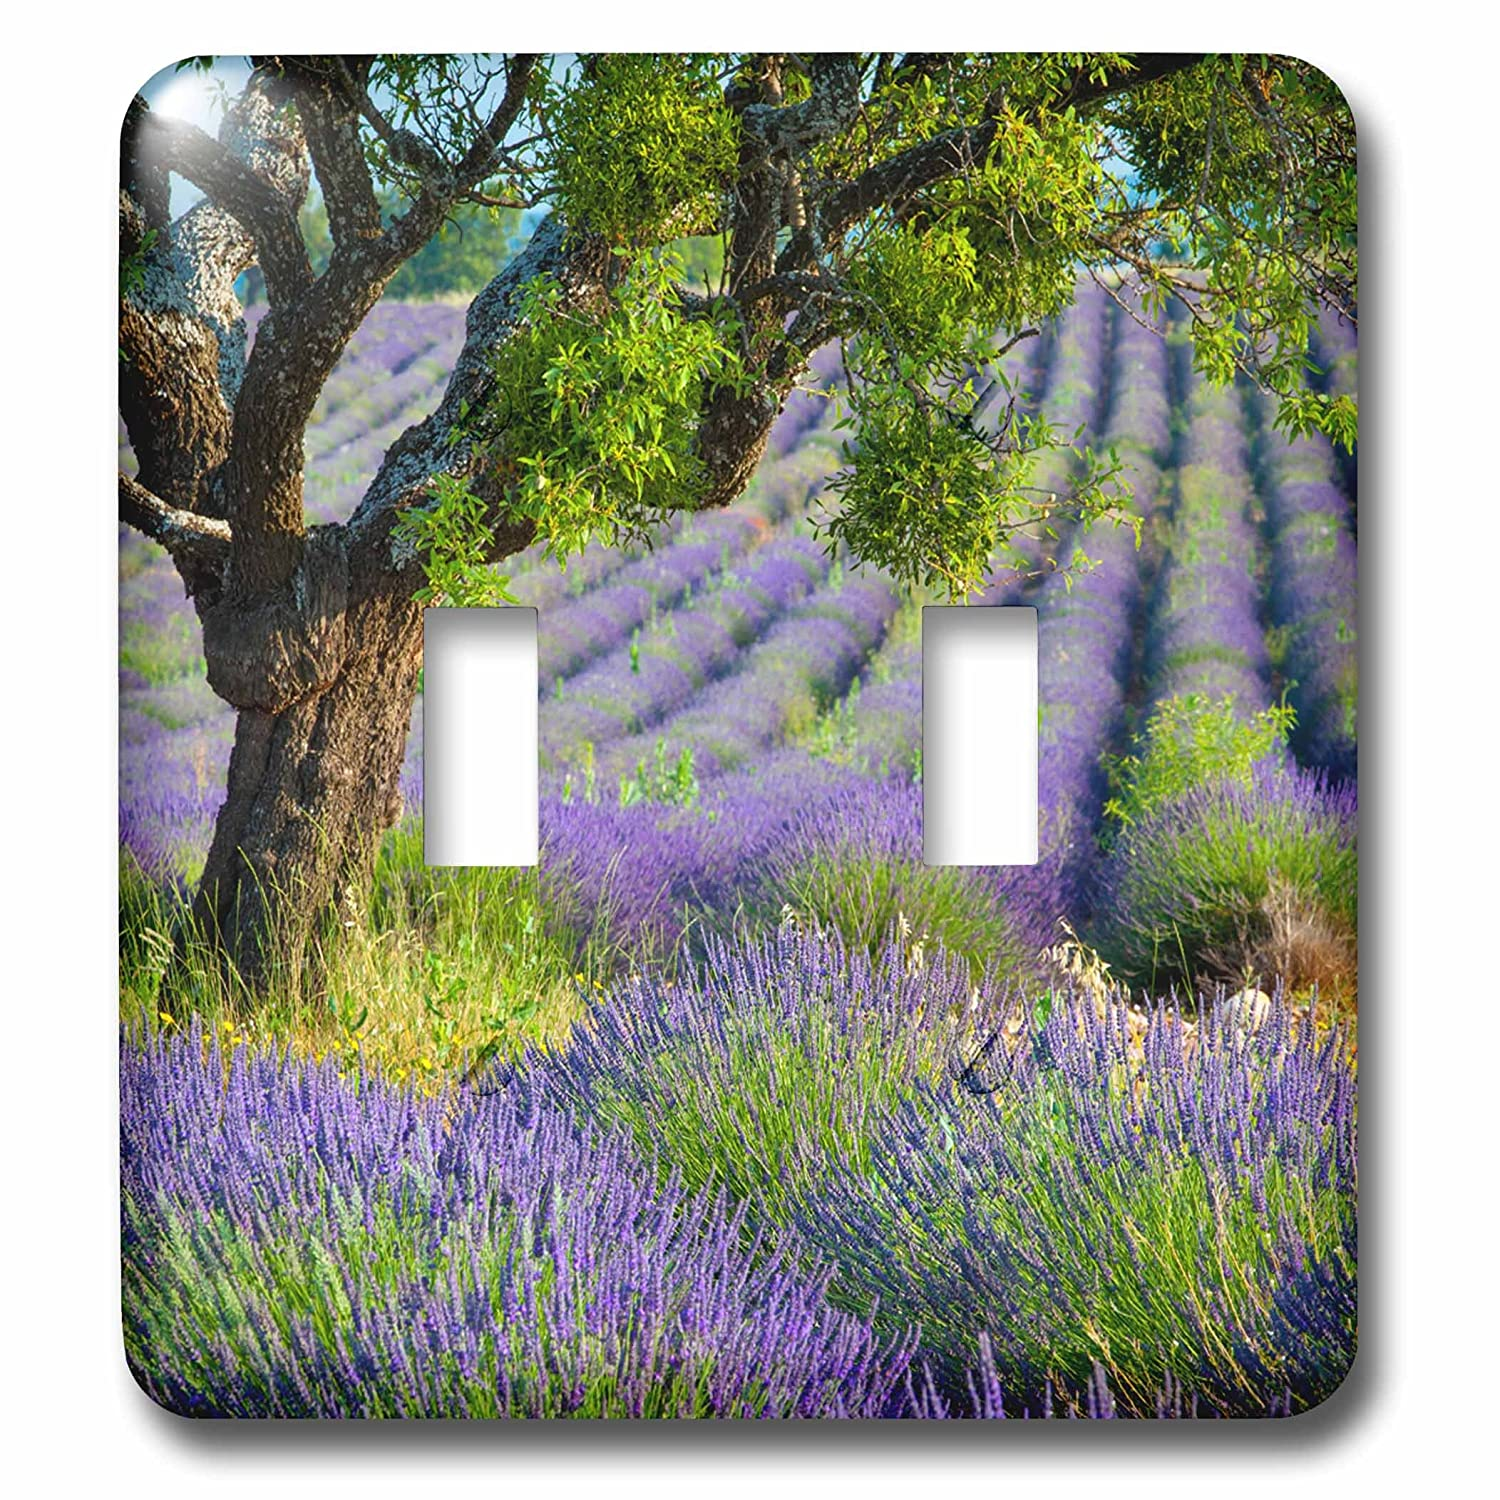 Valensole Plateau France Toggle Switch Multicolor Provence 3dRose lsp/_277366/_2 Tree in Purple Field of Lavender